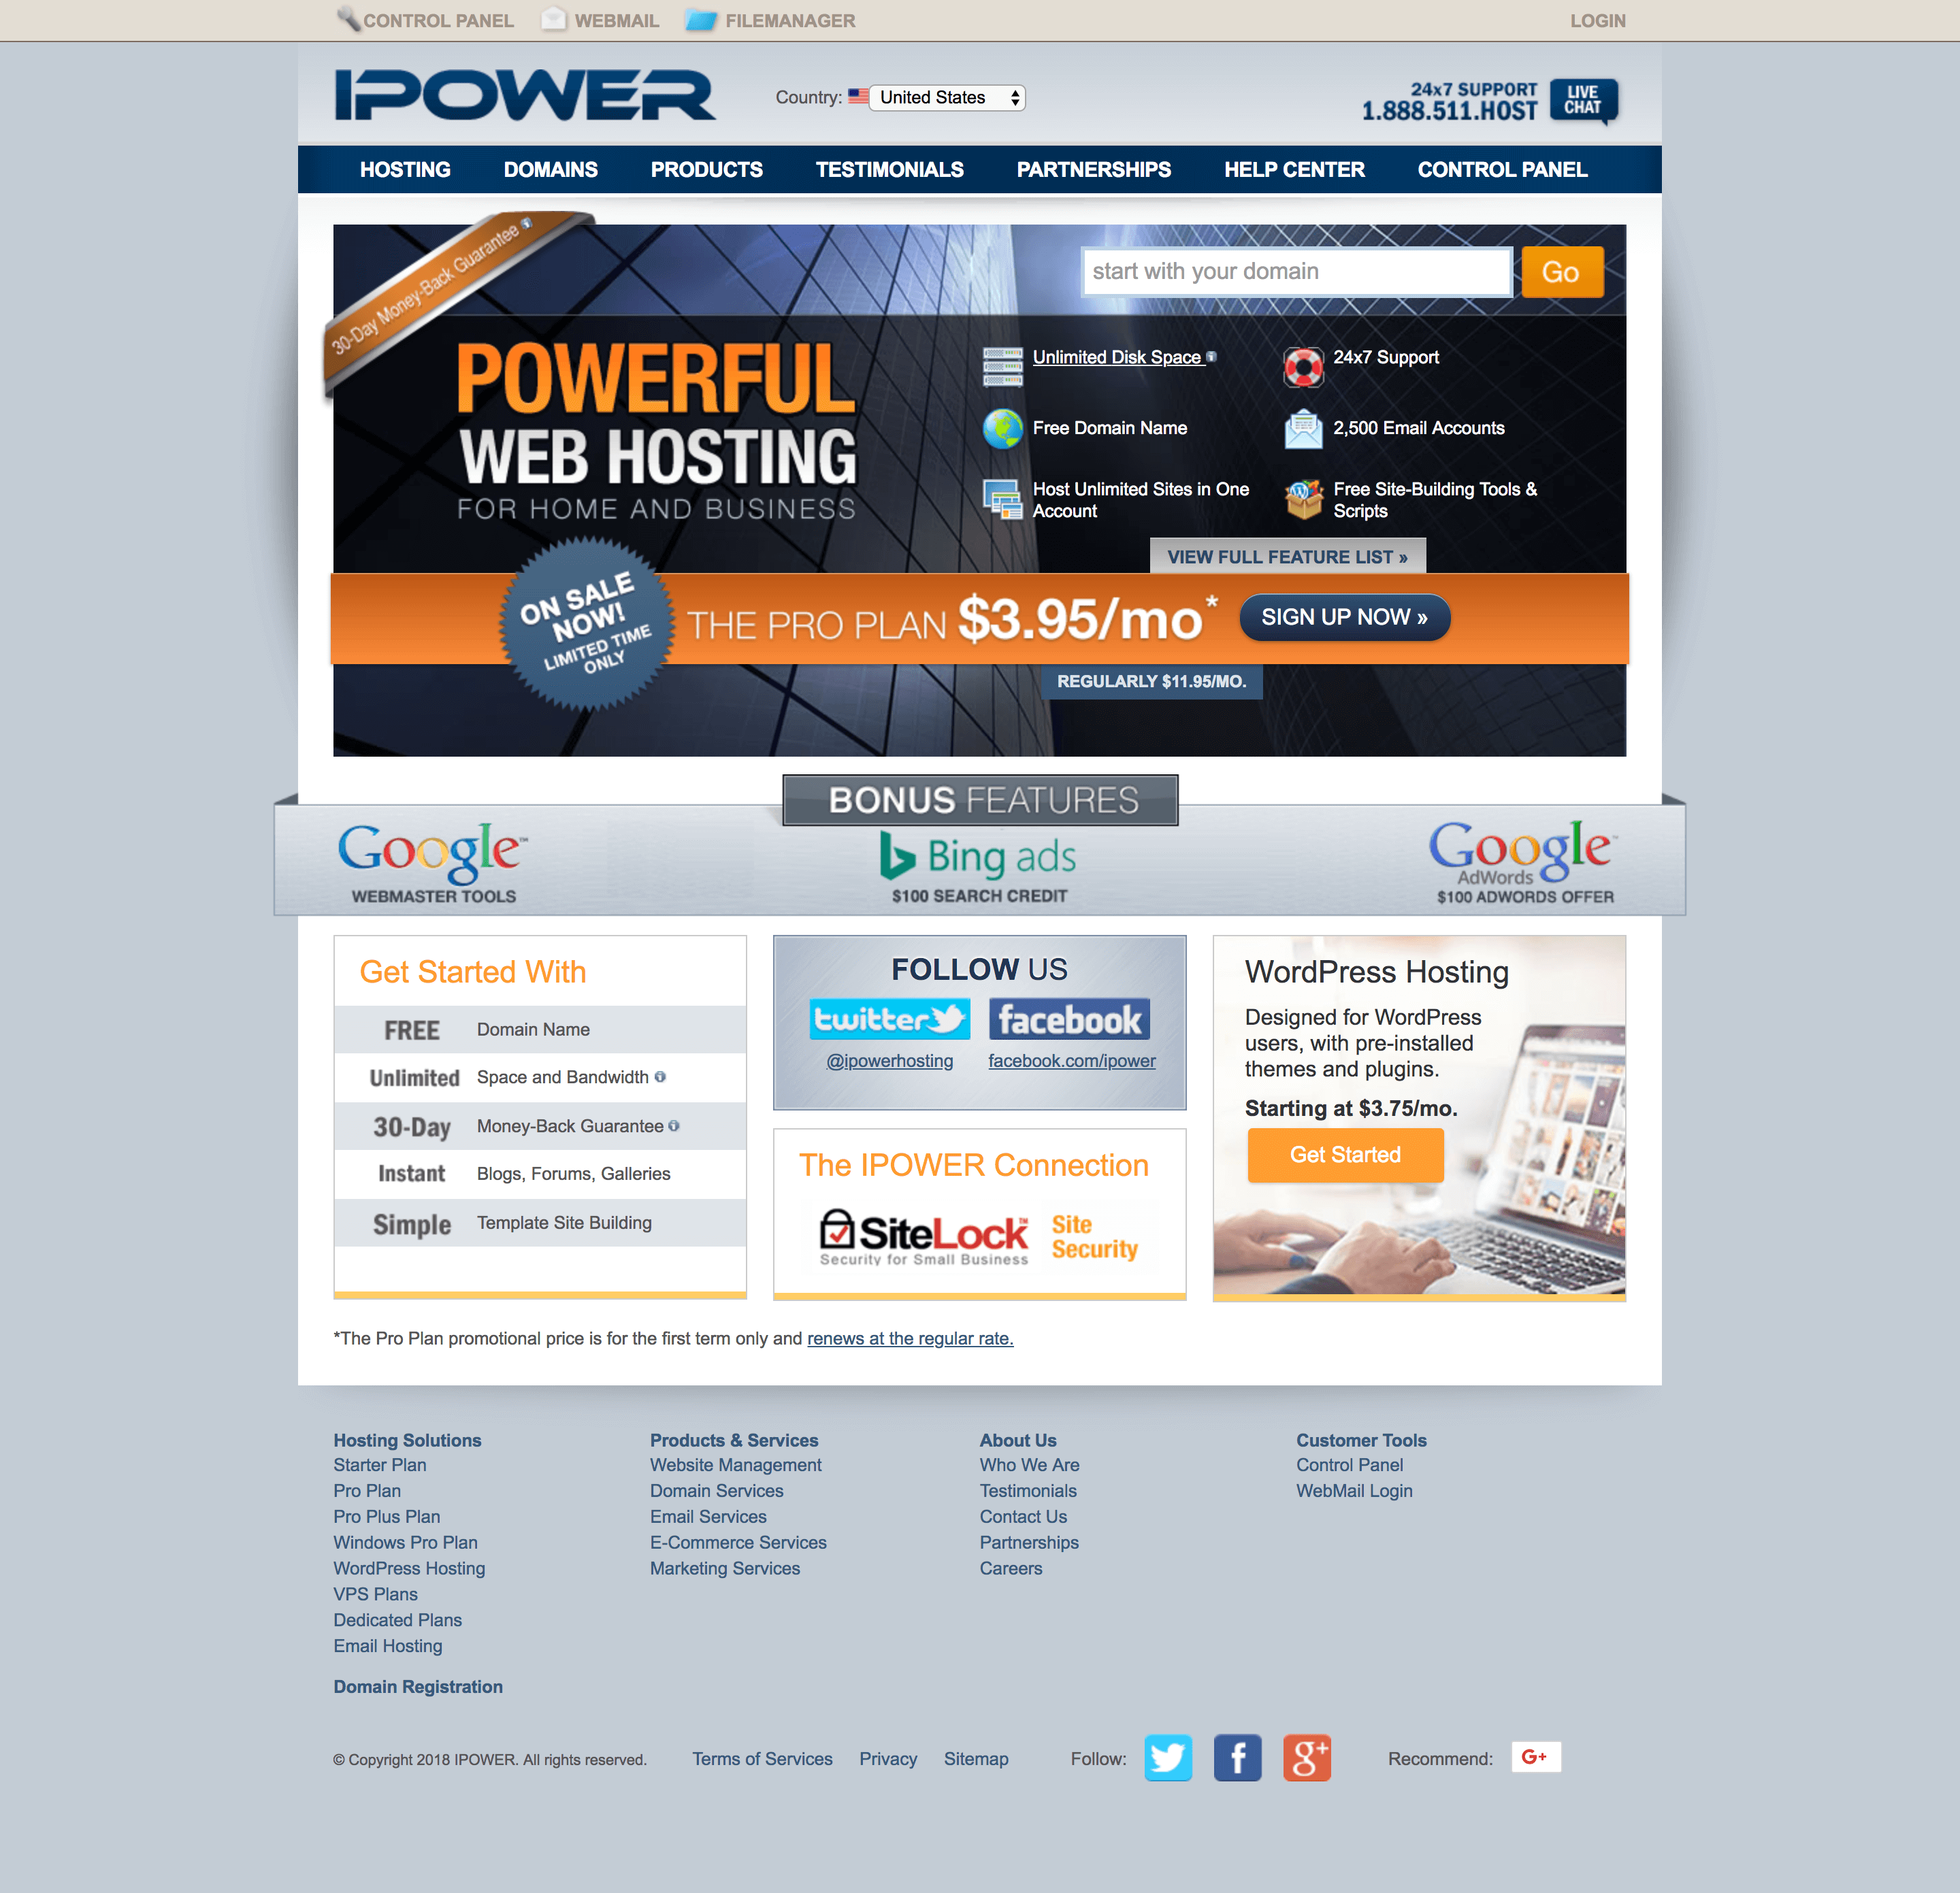 IPower Hosting Review: Green, Lean, But Here's Why We're Not